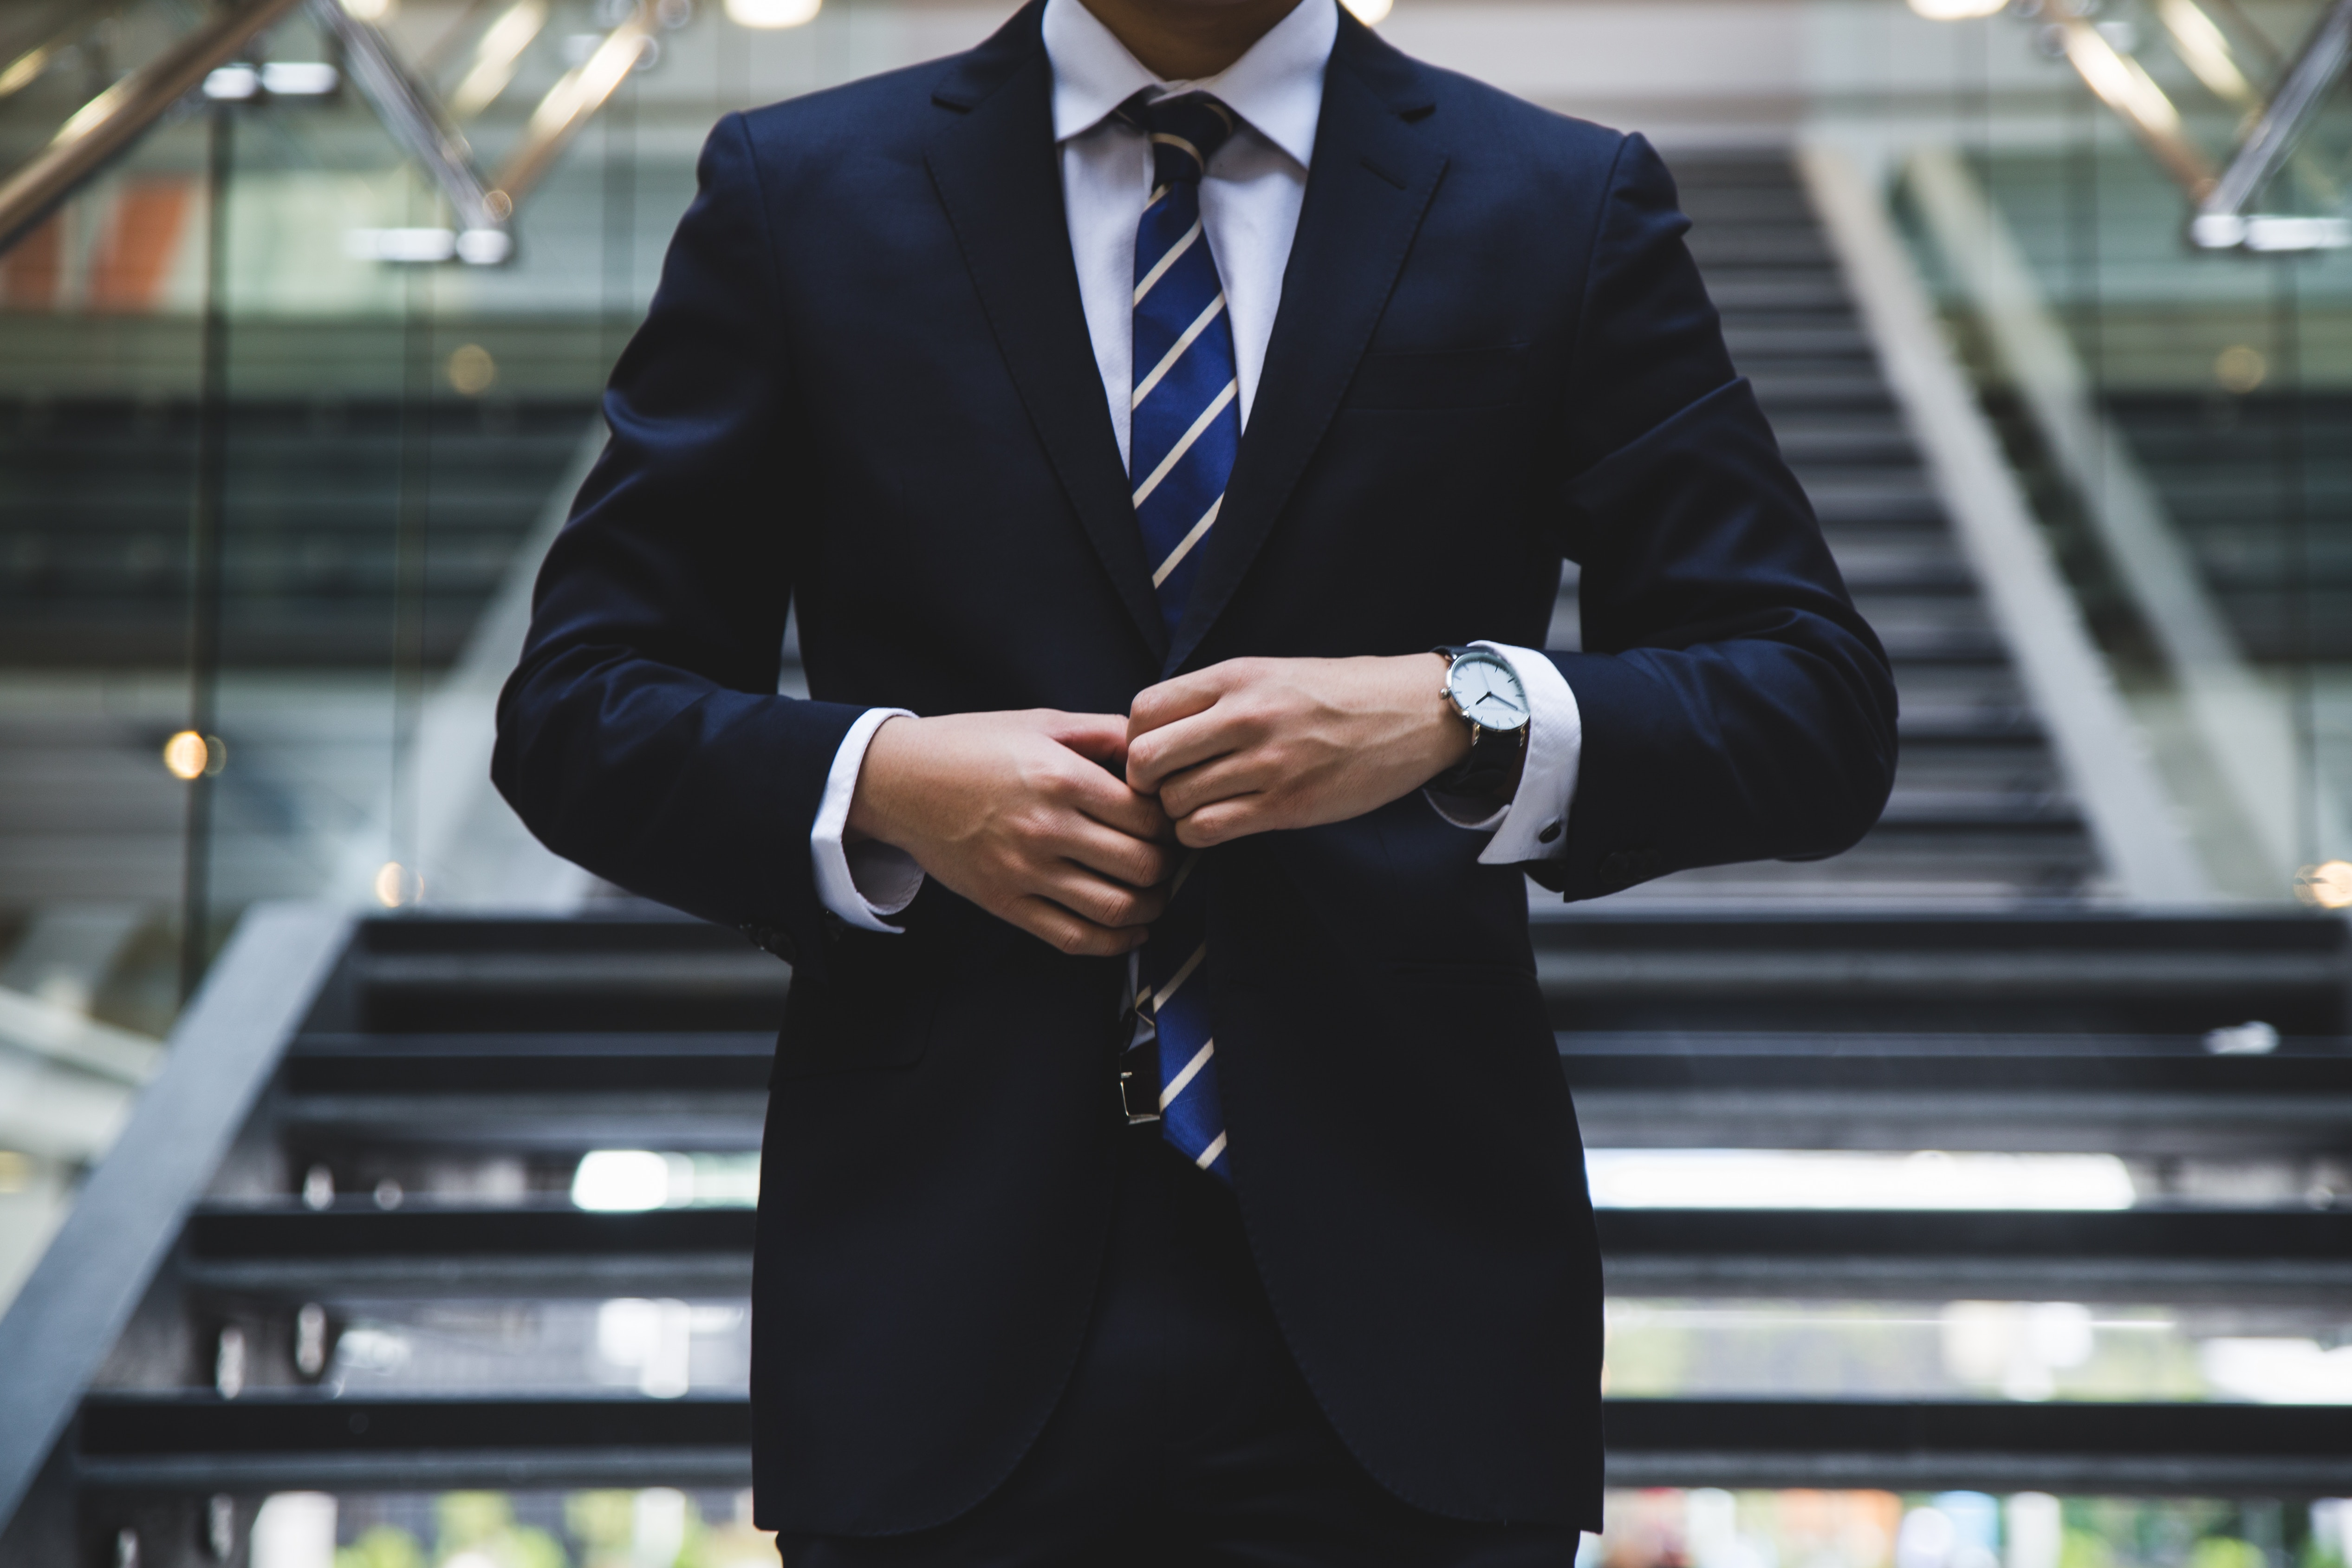 a man wearing nice suits for his executive job interview